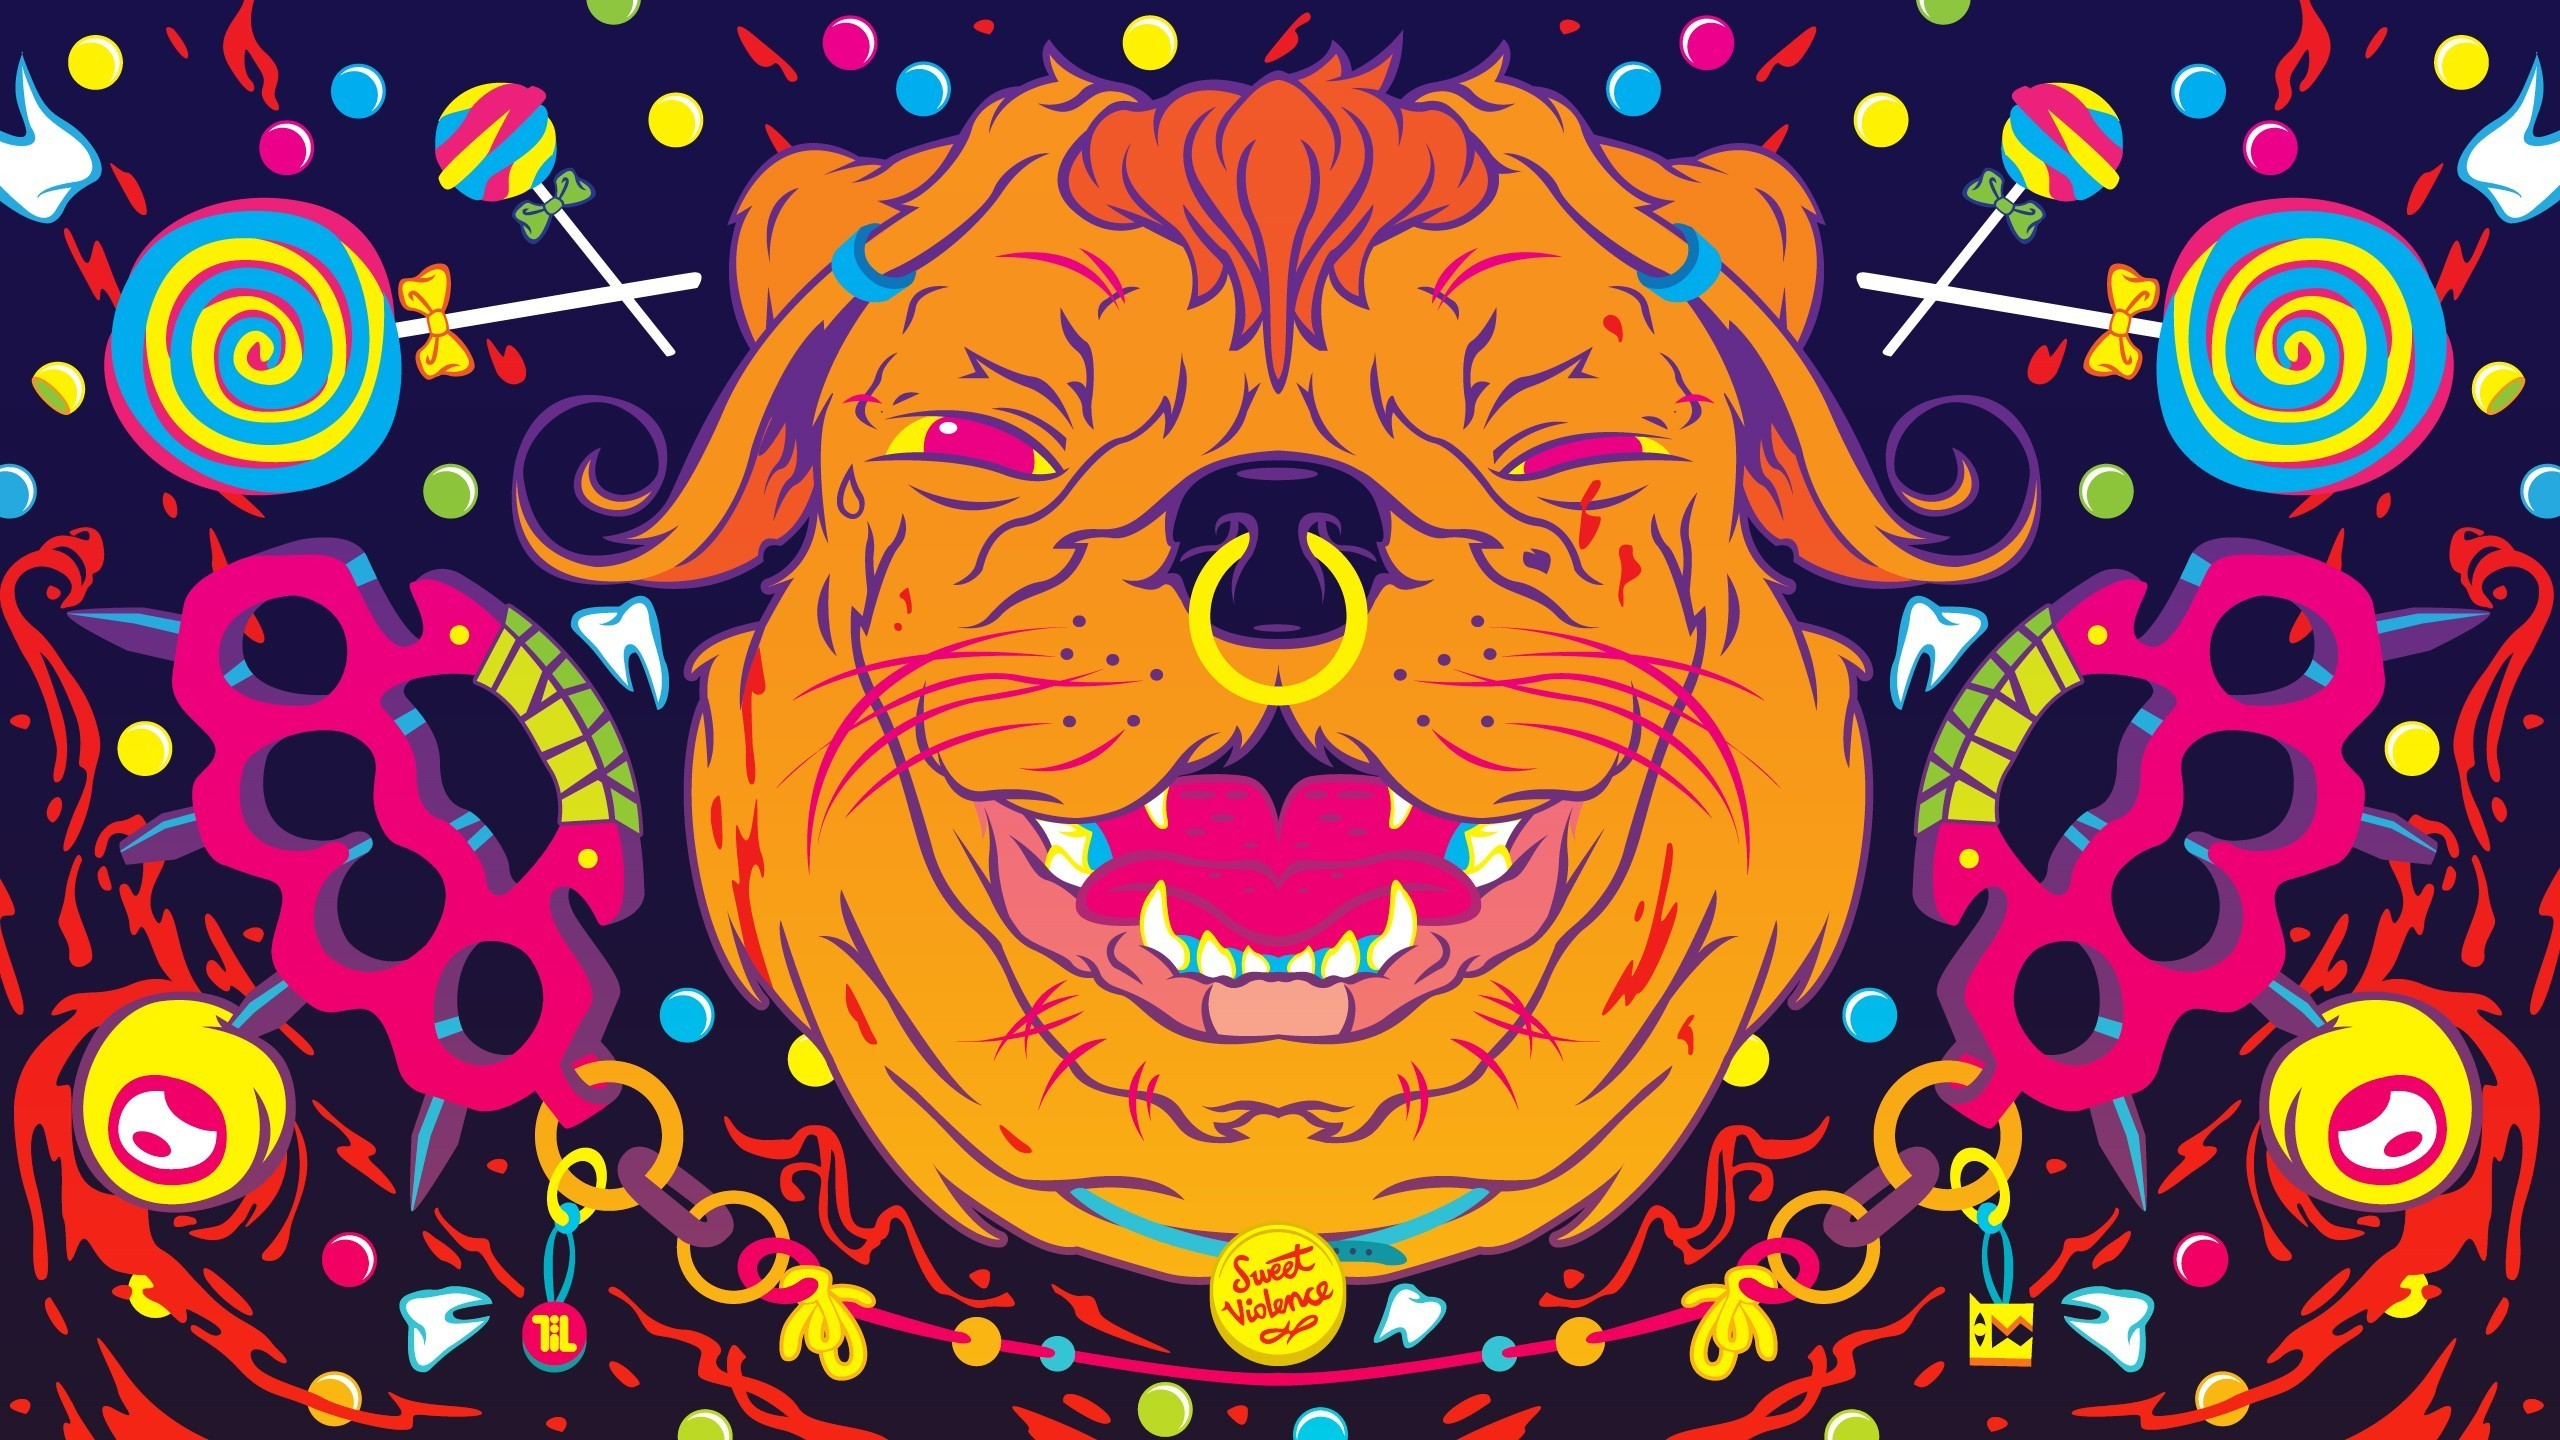 2560x1440 1920x1200 trippy wallpapers Tumblr 1920×1200 Trippy Wallpapers (41 Wallpapers) | Adorable